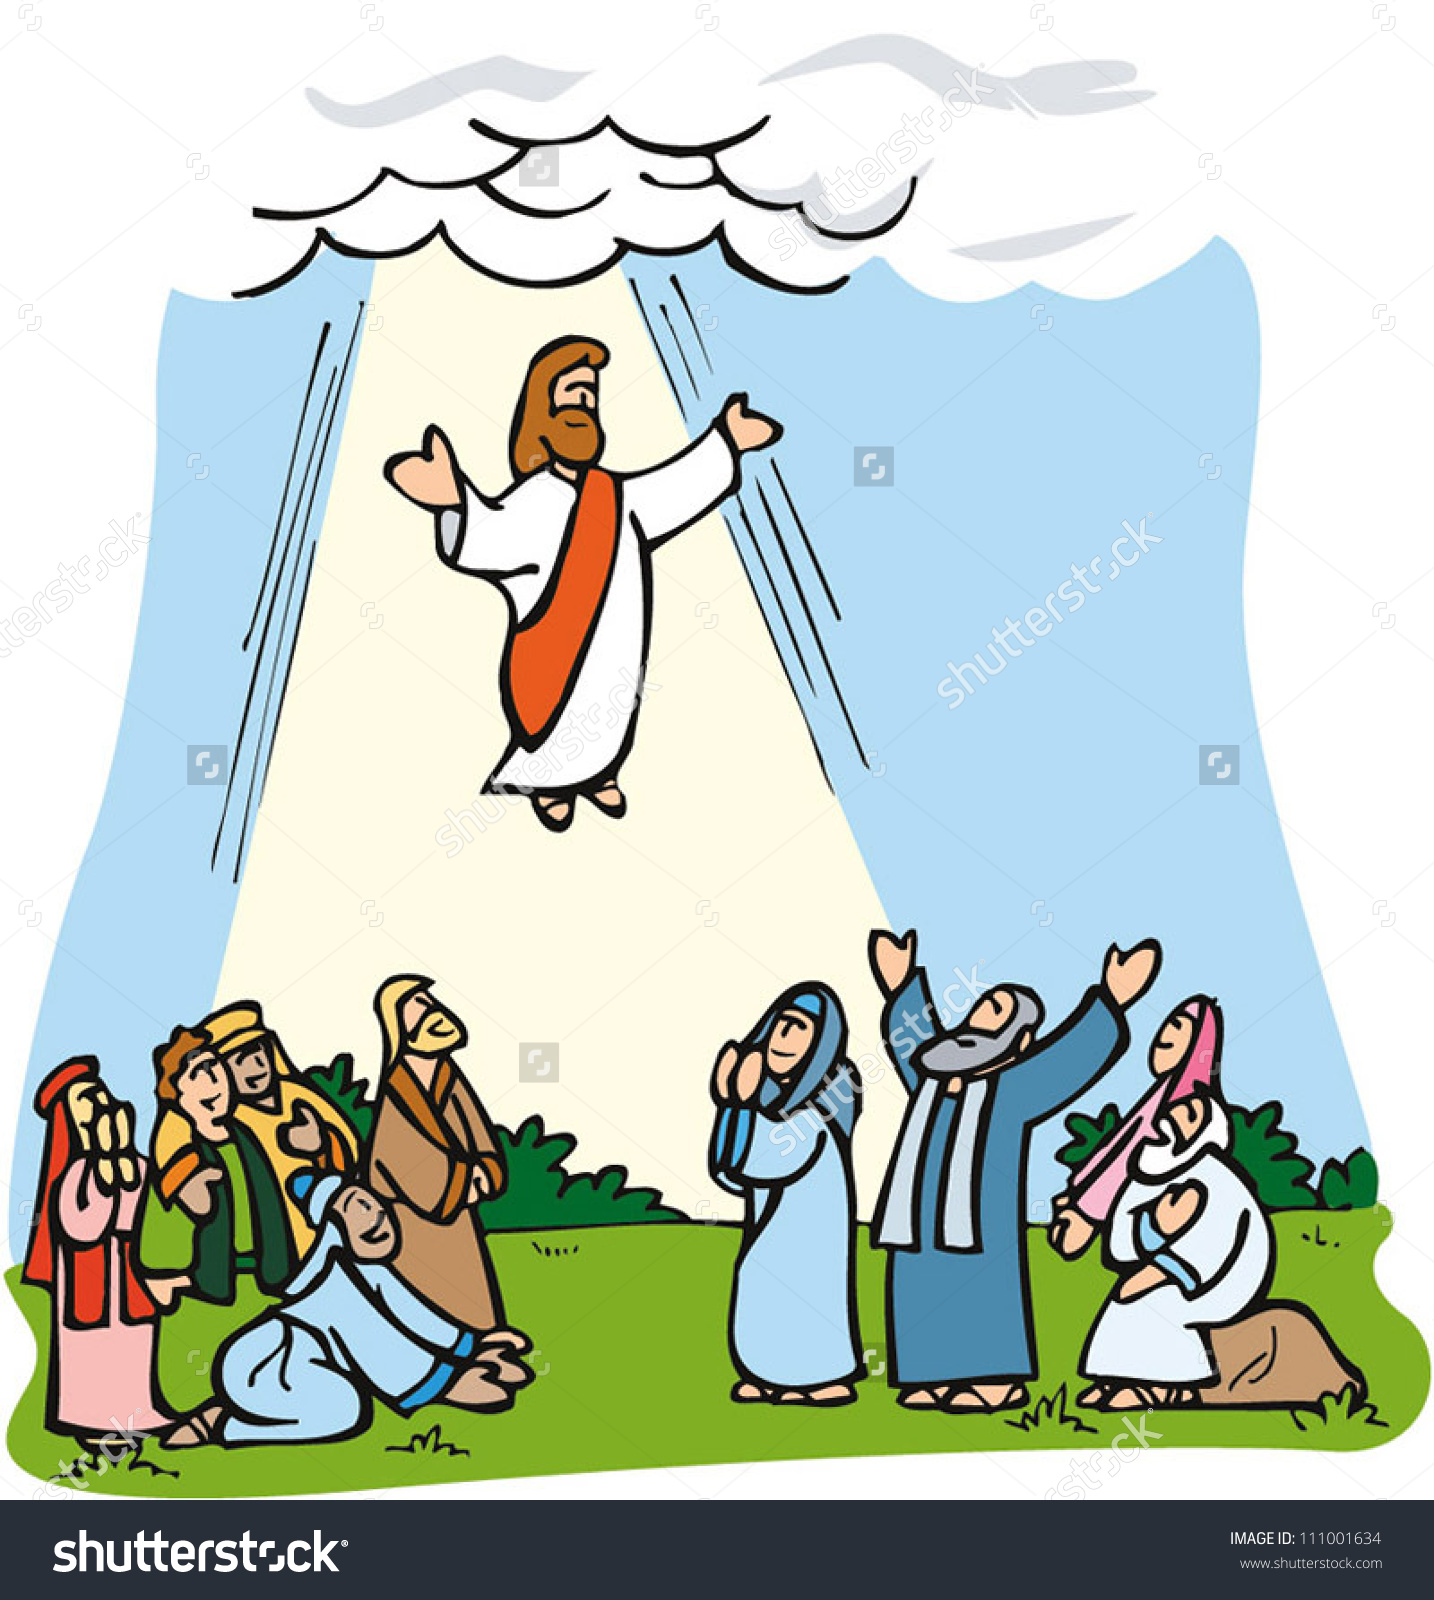 Clipart jesus ascension.